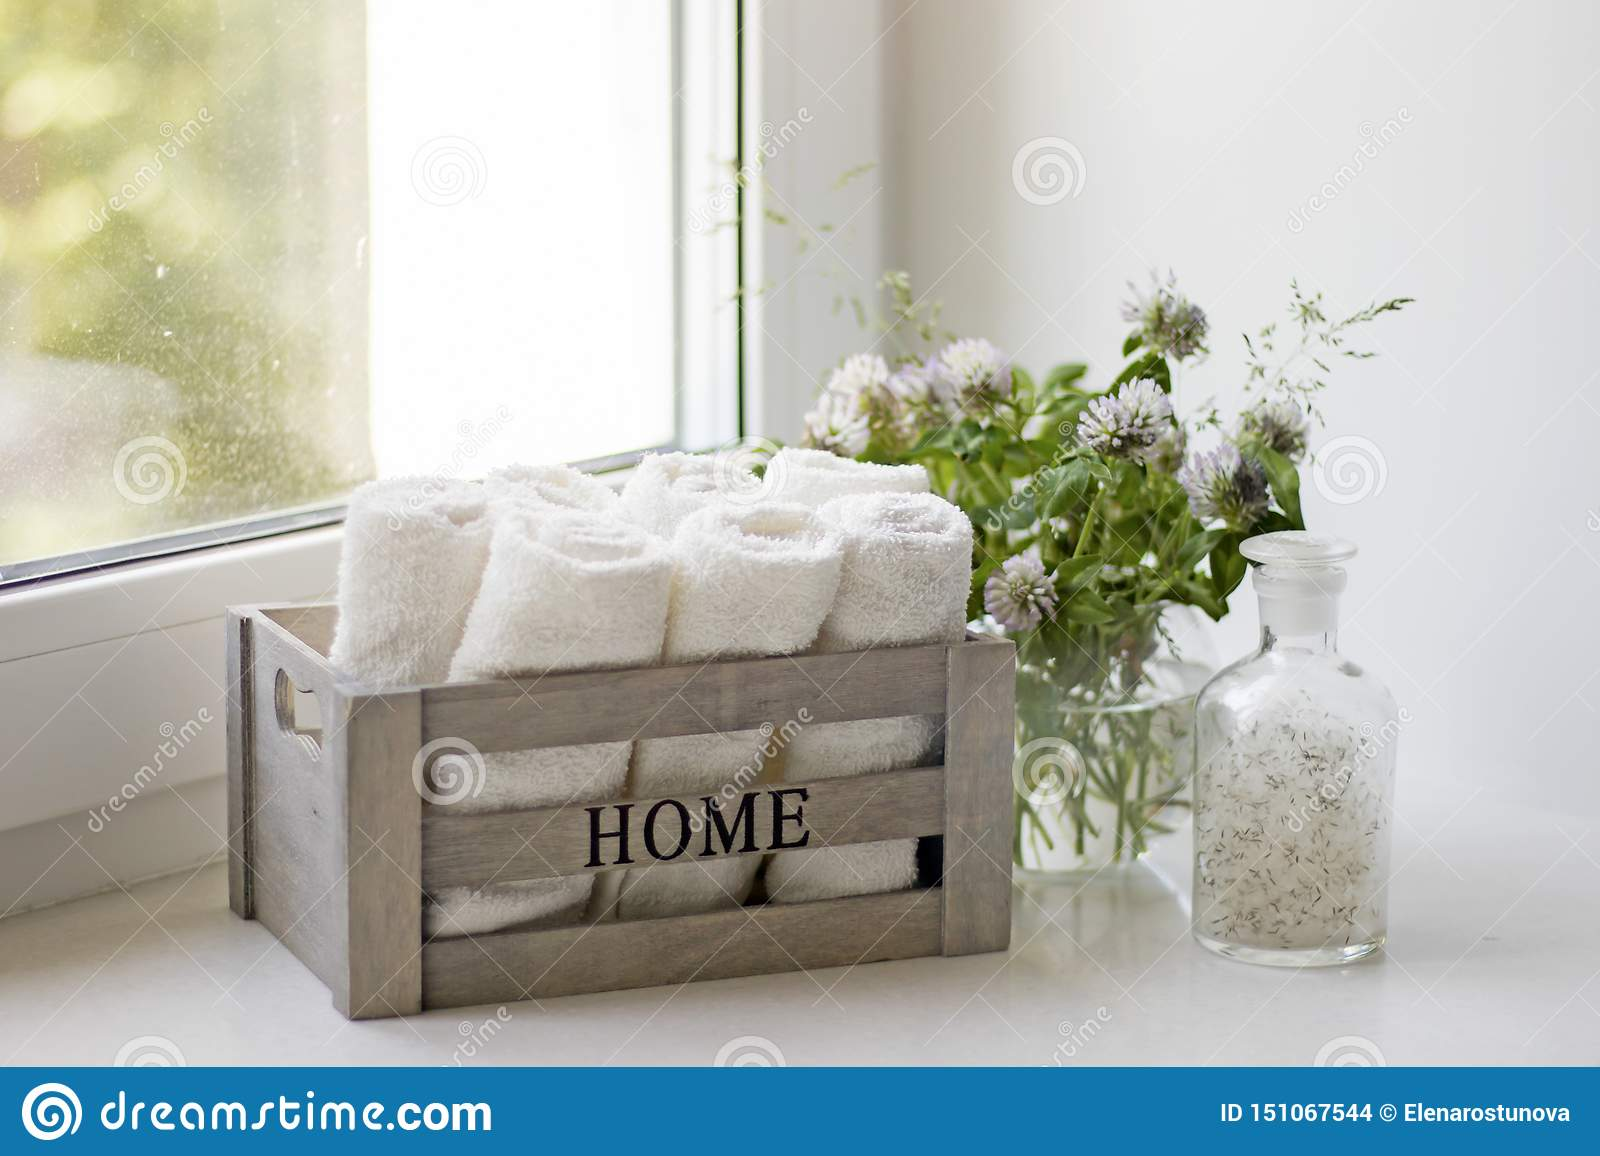 Small Terry Hand Towels Rolled Into Rolls In Wooden Box On A Window In The Bathroom Stock Photo Image Of Plant Interior 151067544